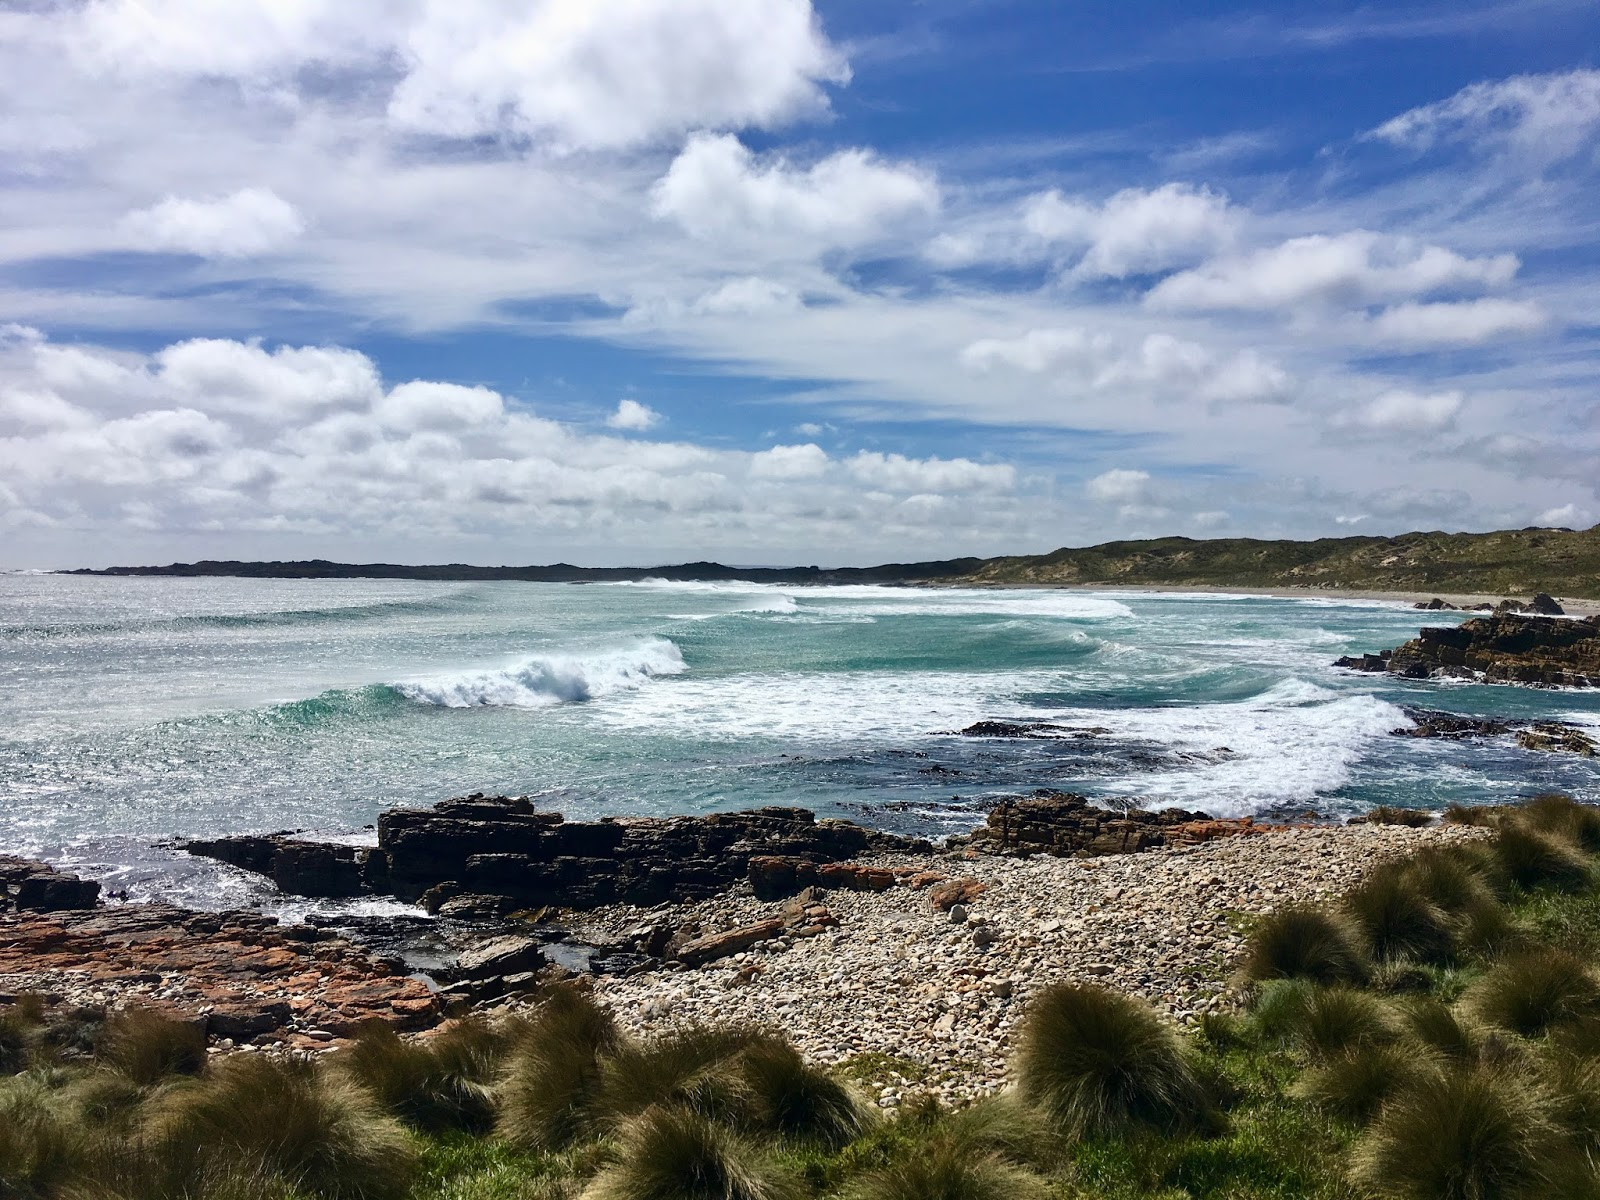 The Ravenous Duck: Camping on Tassie's west coast